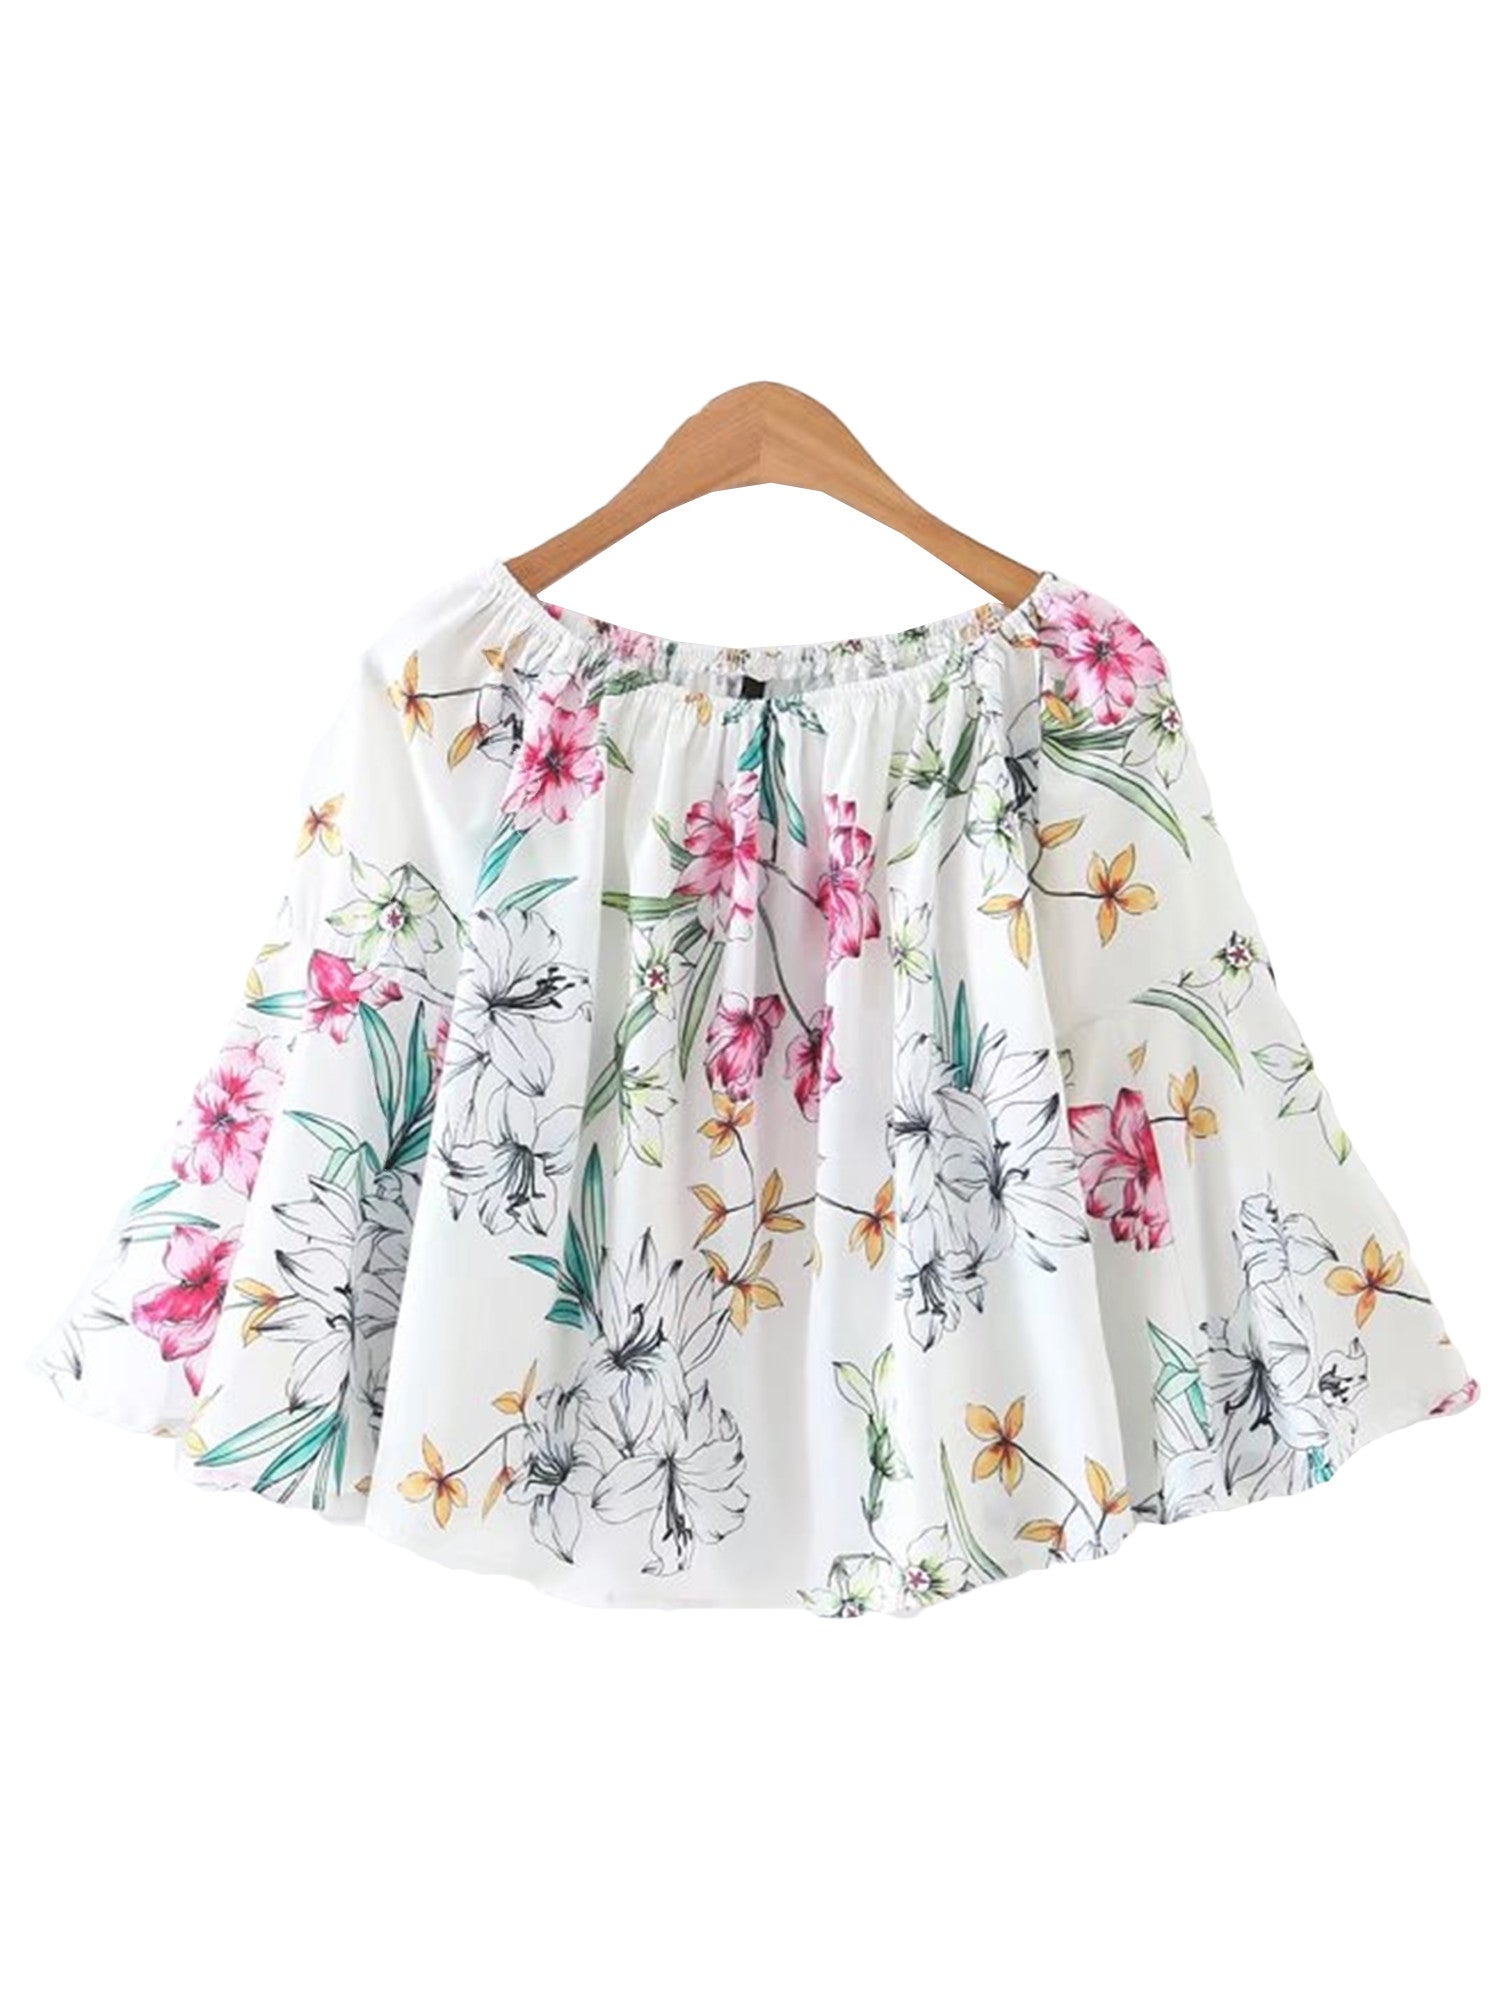 'Star' Floral Flare Swing Top